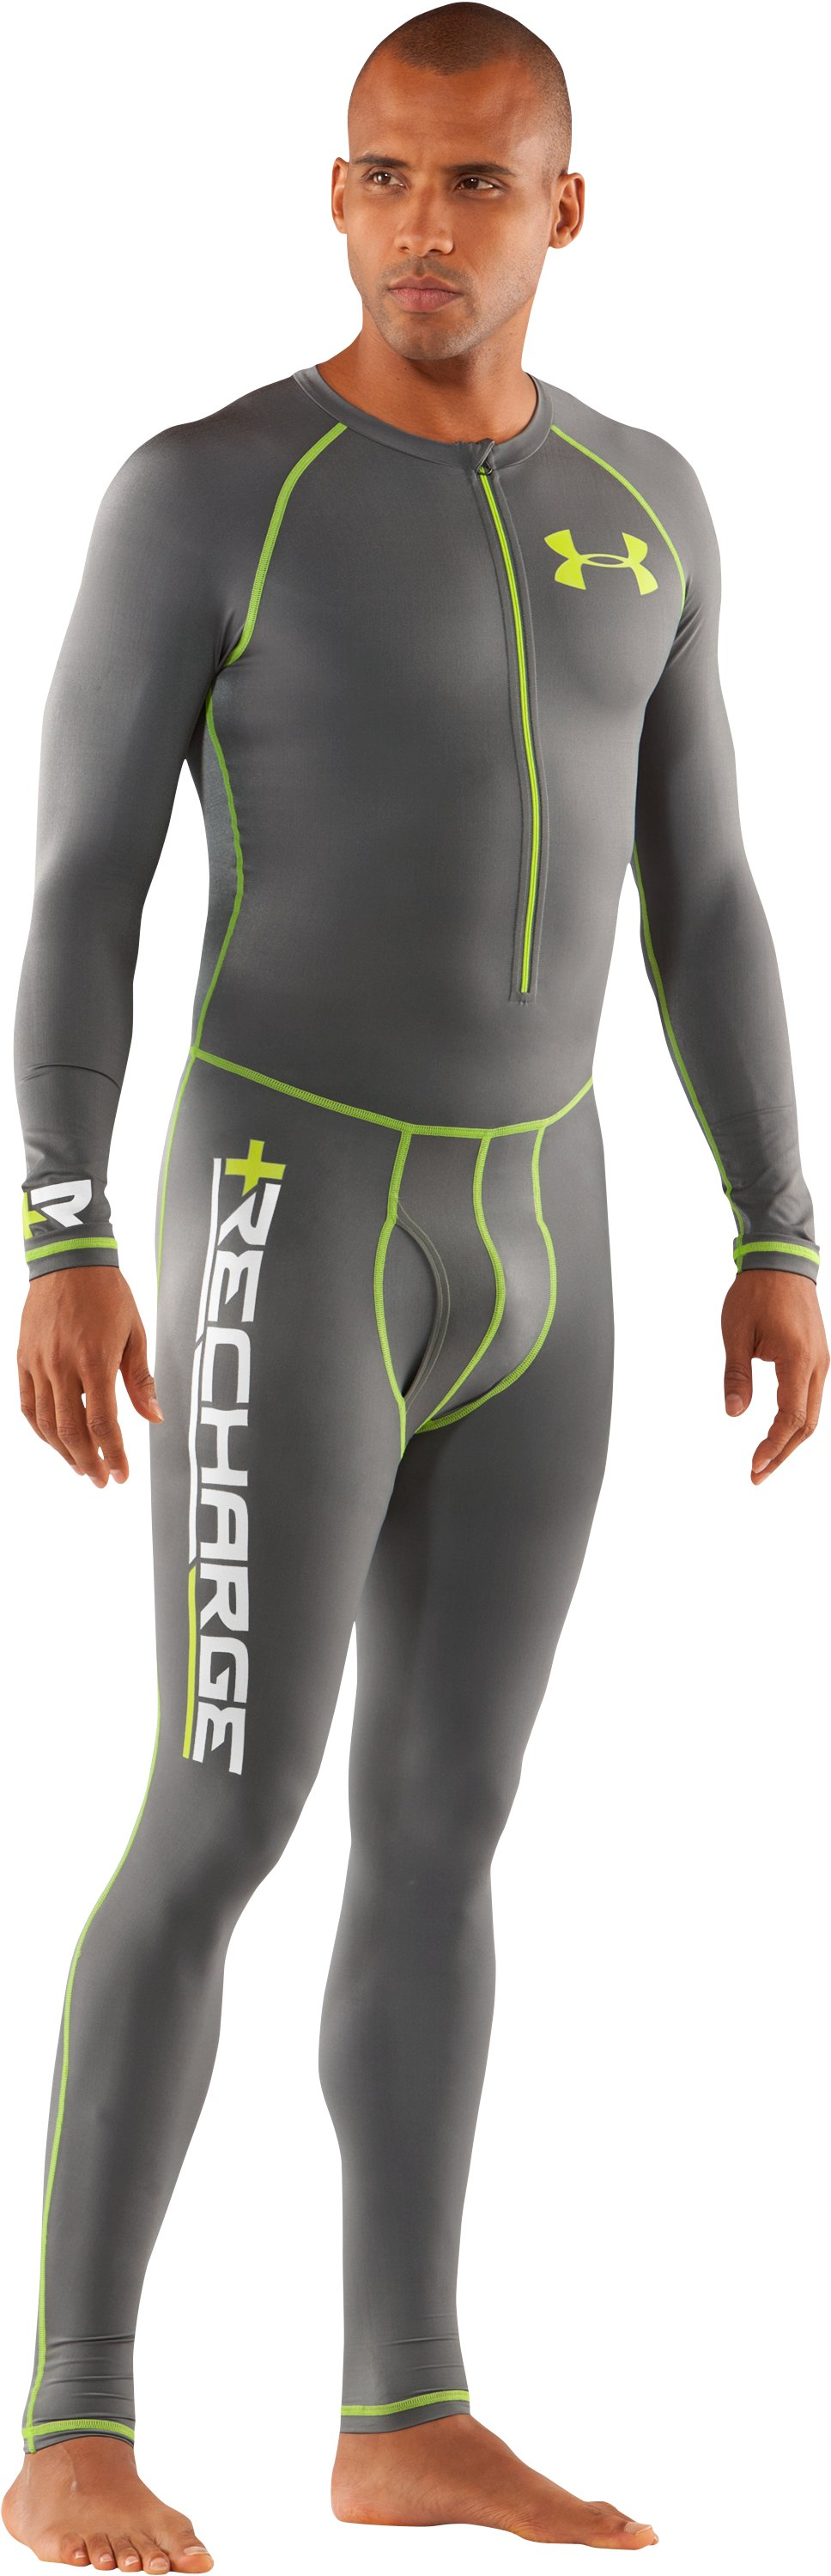 Men's Recharge® Energy Suit, Metal, Front